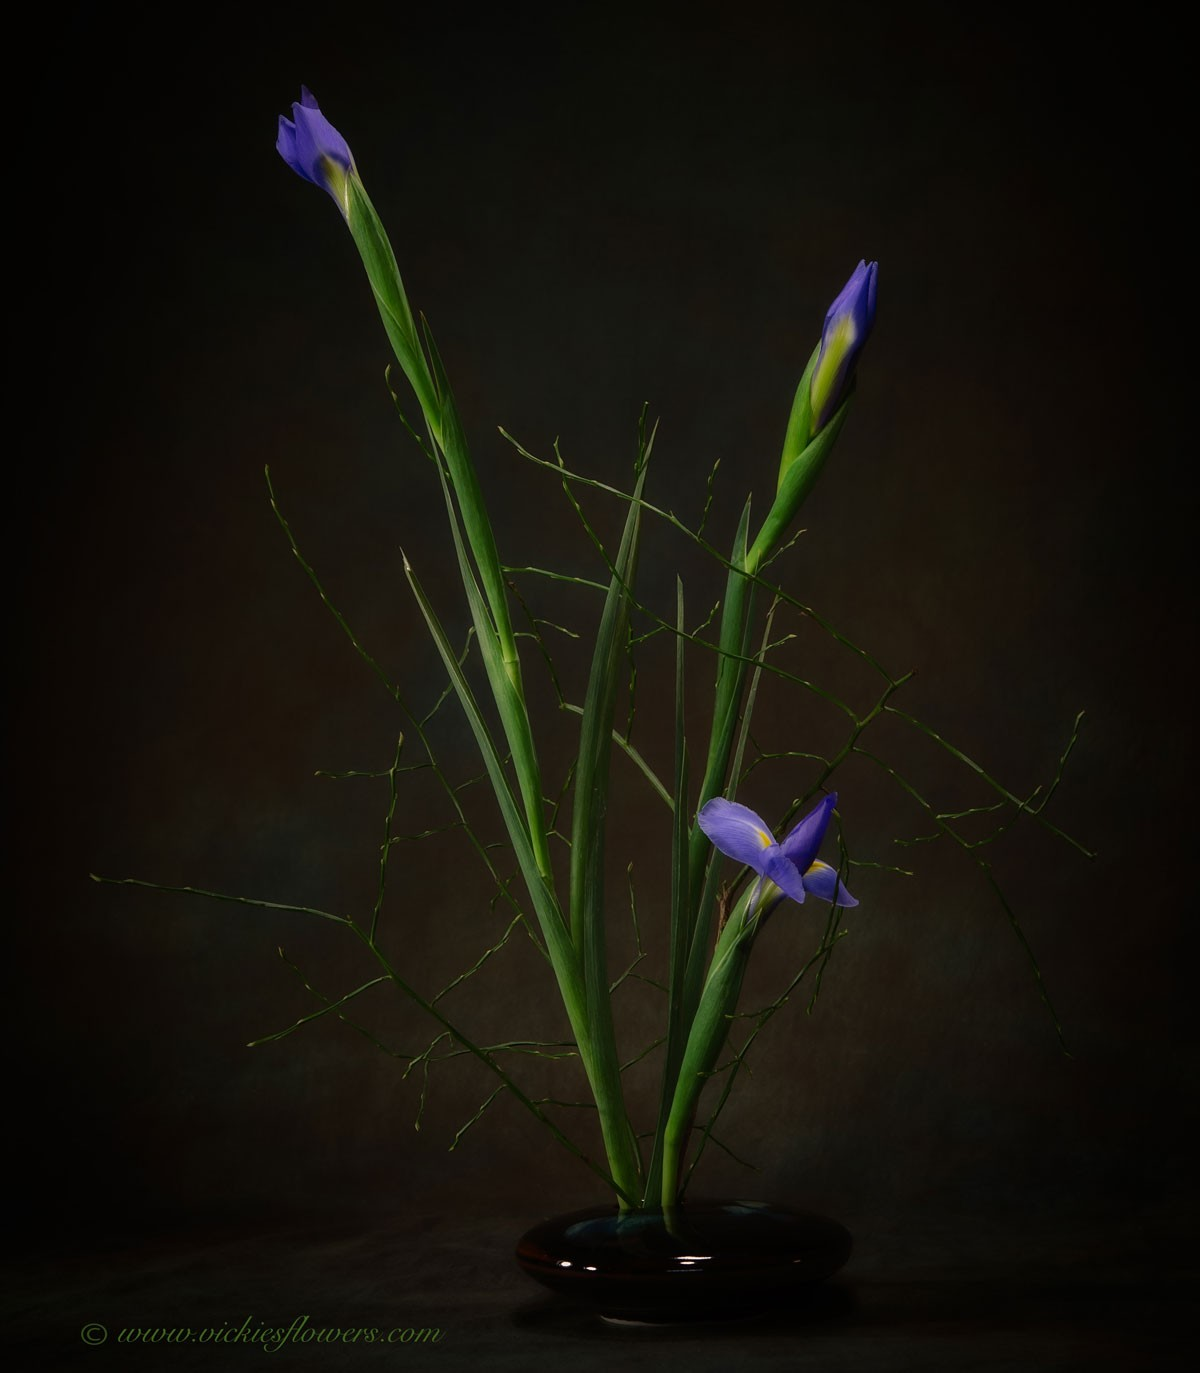 Beautiful detailed photograph of 3 blue Iris ikebana arrangement. This unique image is great for oriental or fengshui decor.